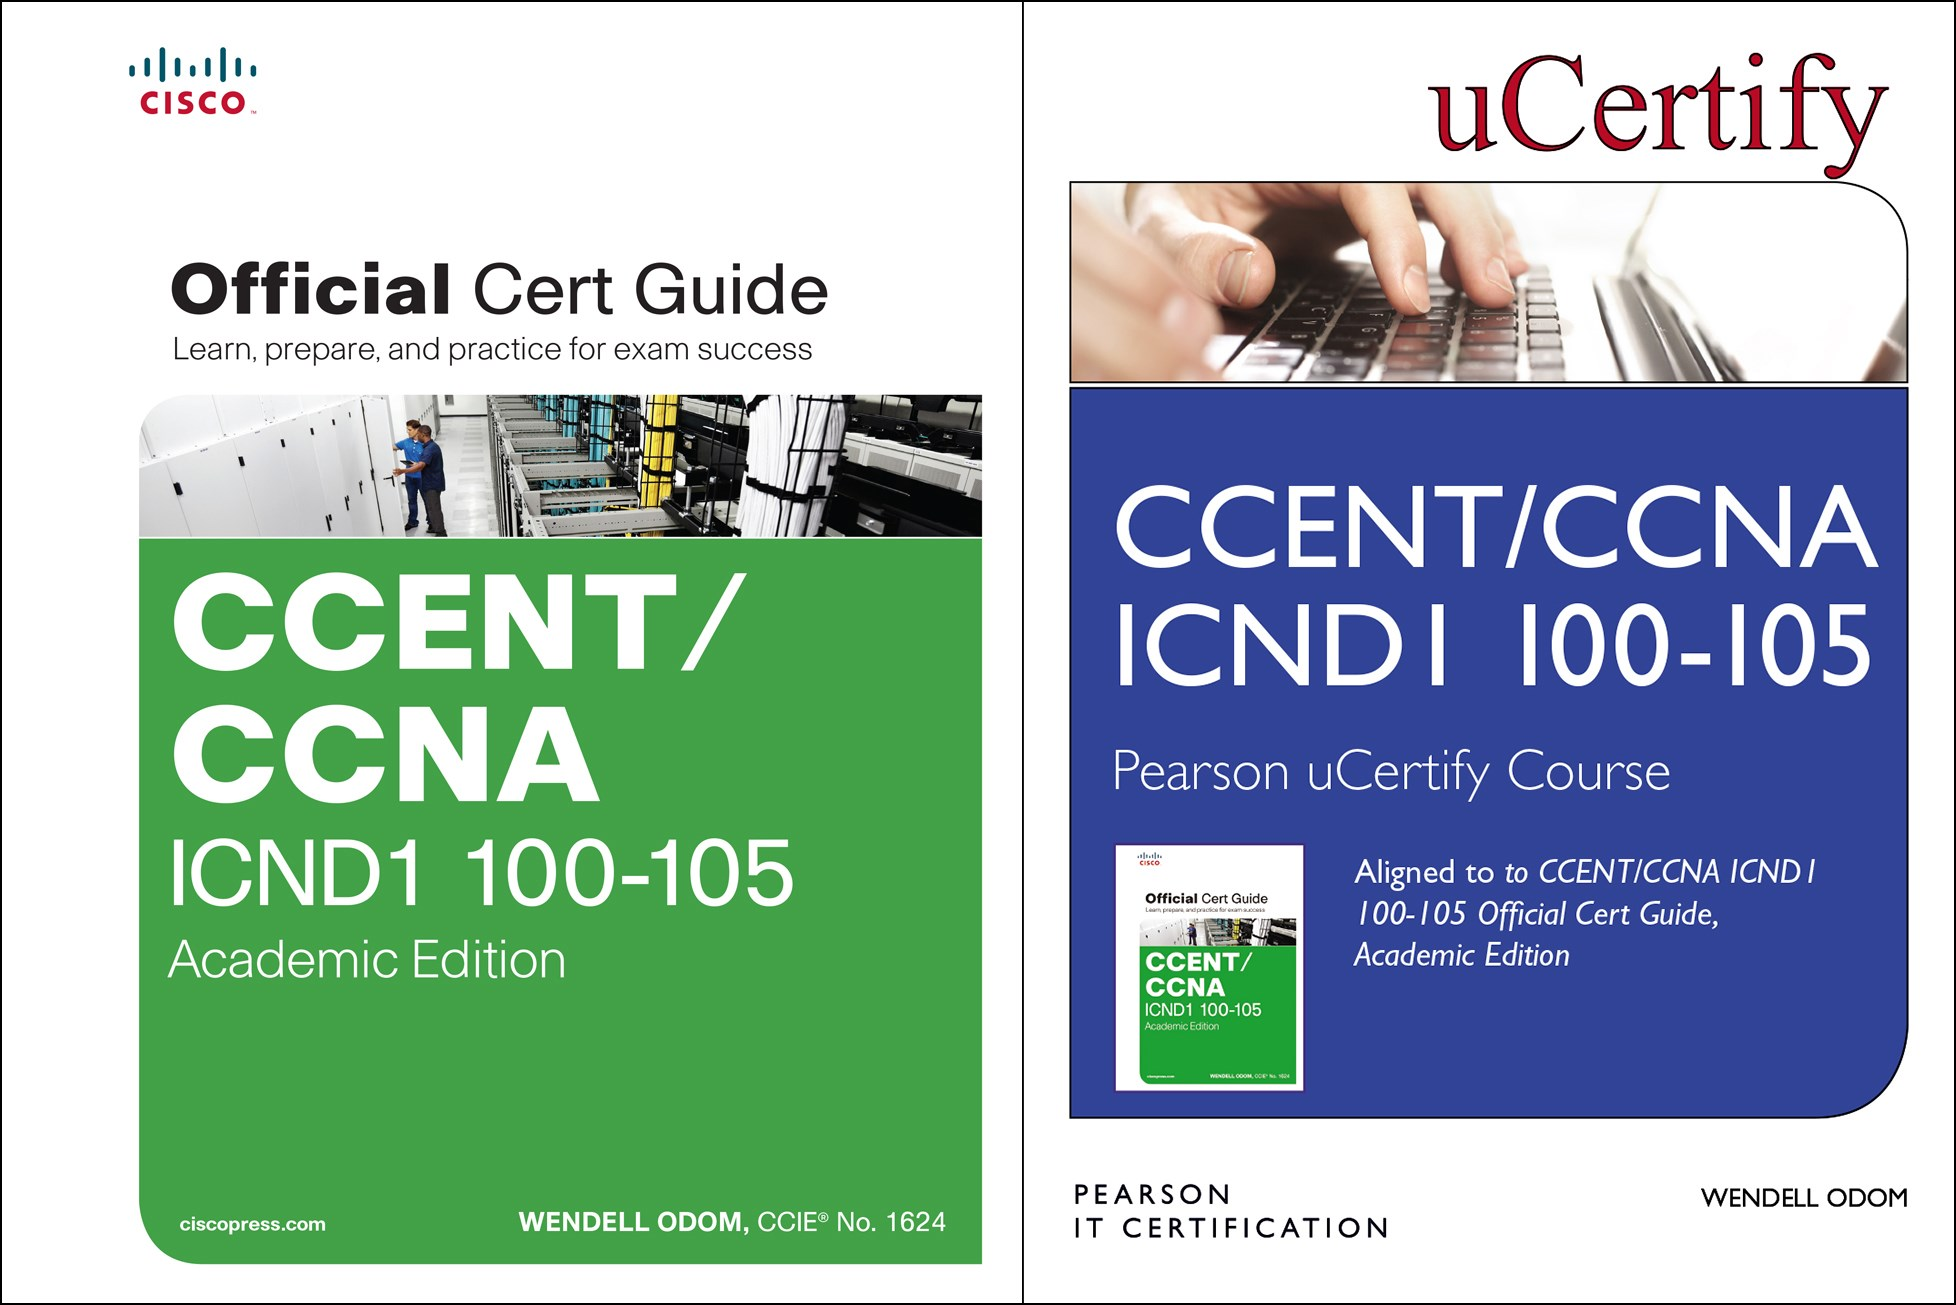 CCENT ICND1 100-105 Pearson uCertify Course and Textbook Academic Edition Bundle